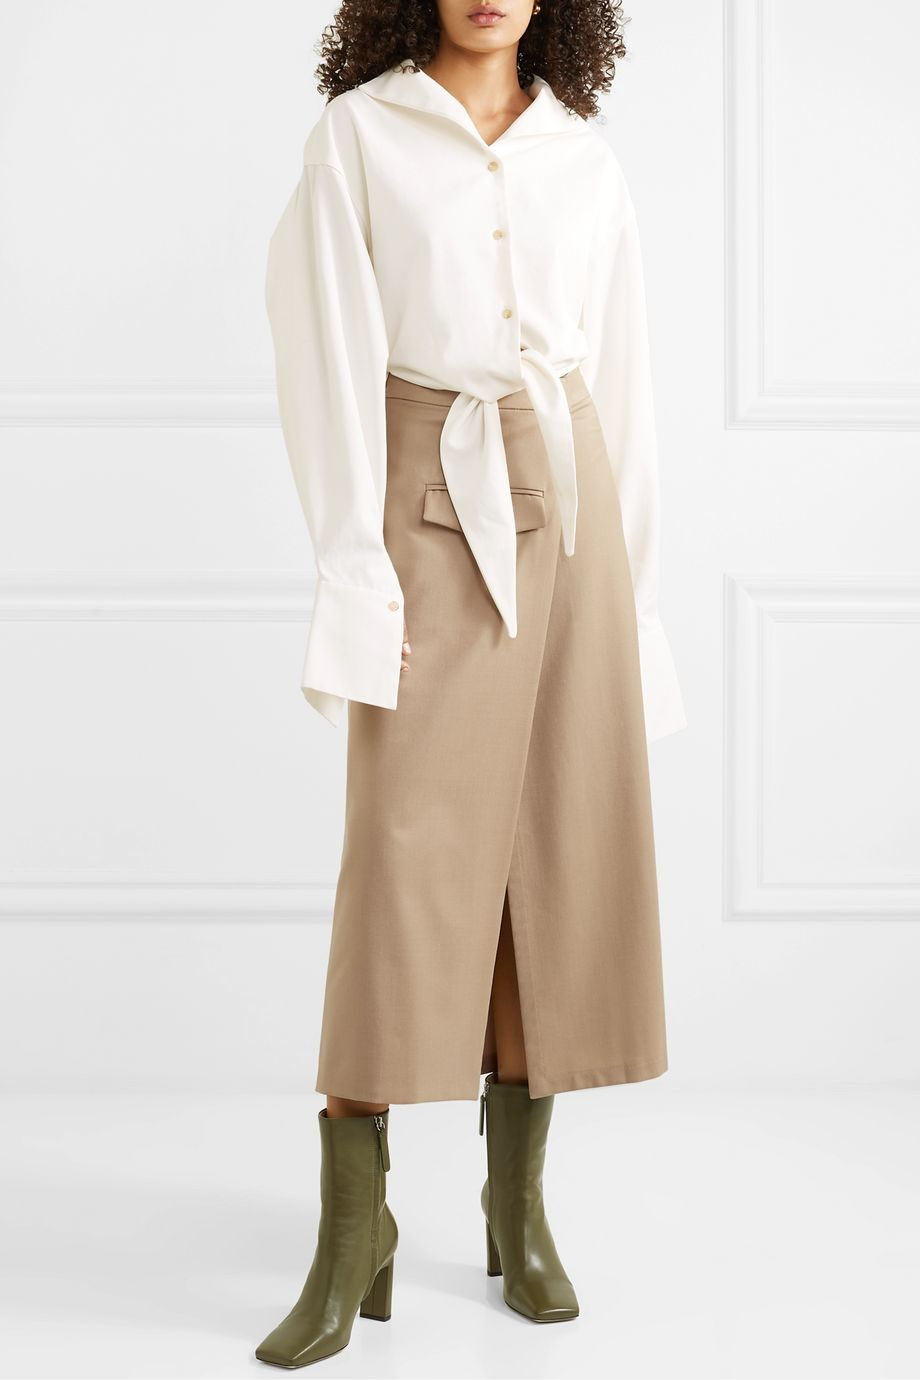 aaizél + NET SUSTAIN pleated wool-blend twill wrap skirt